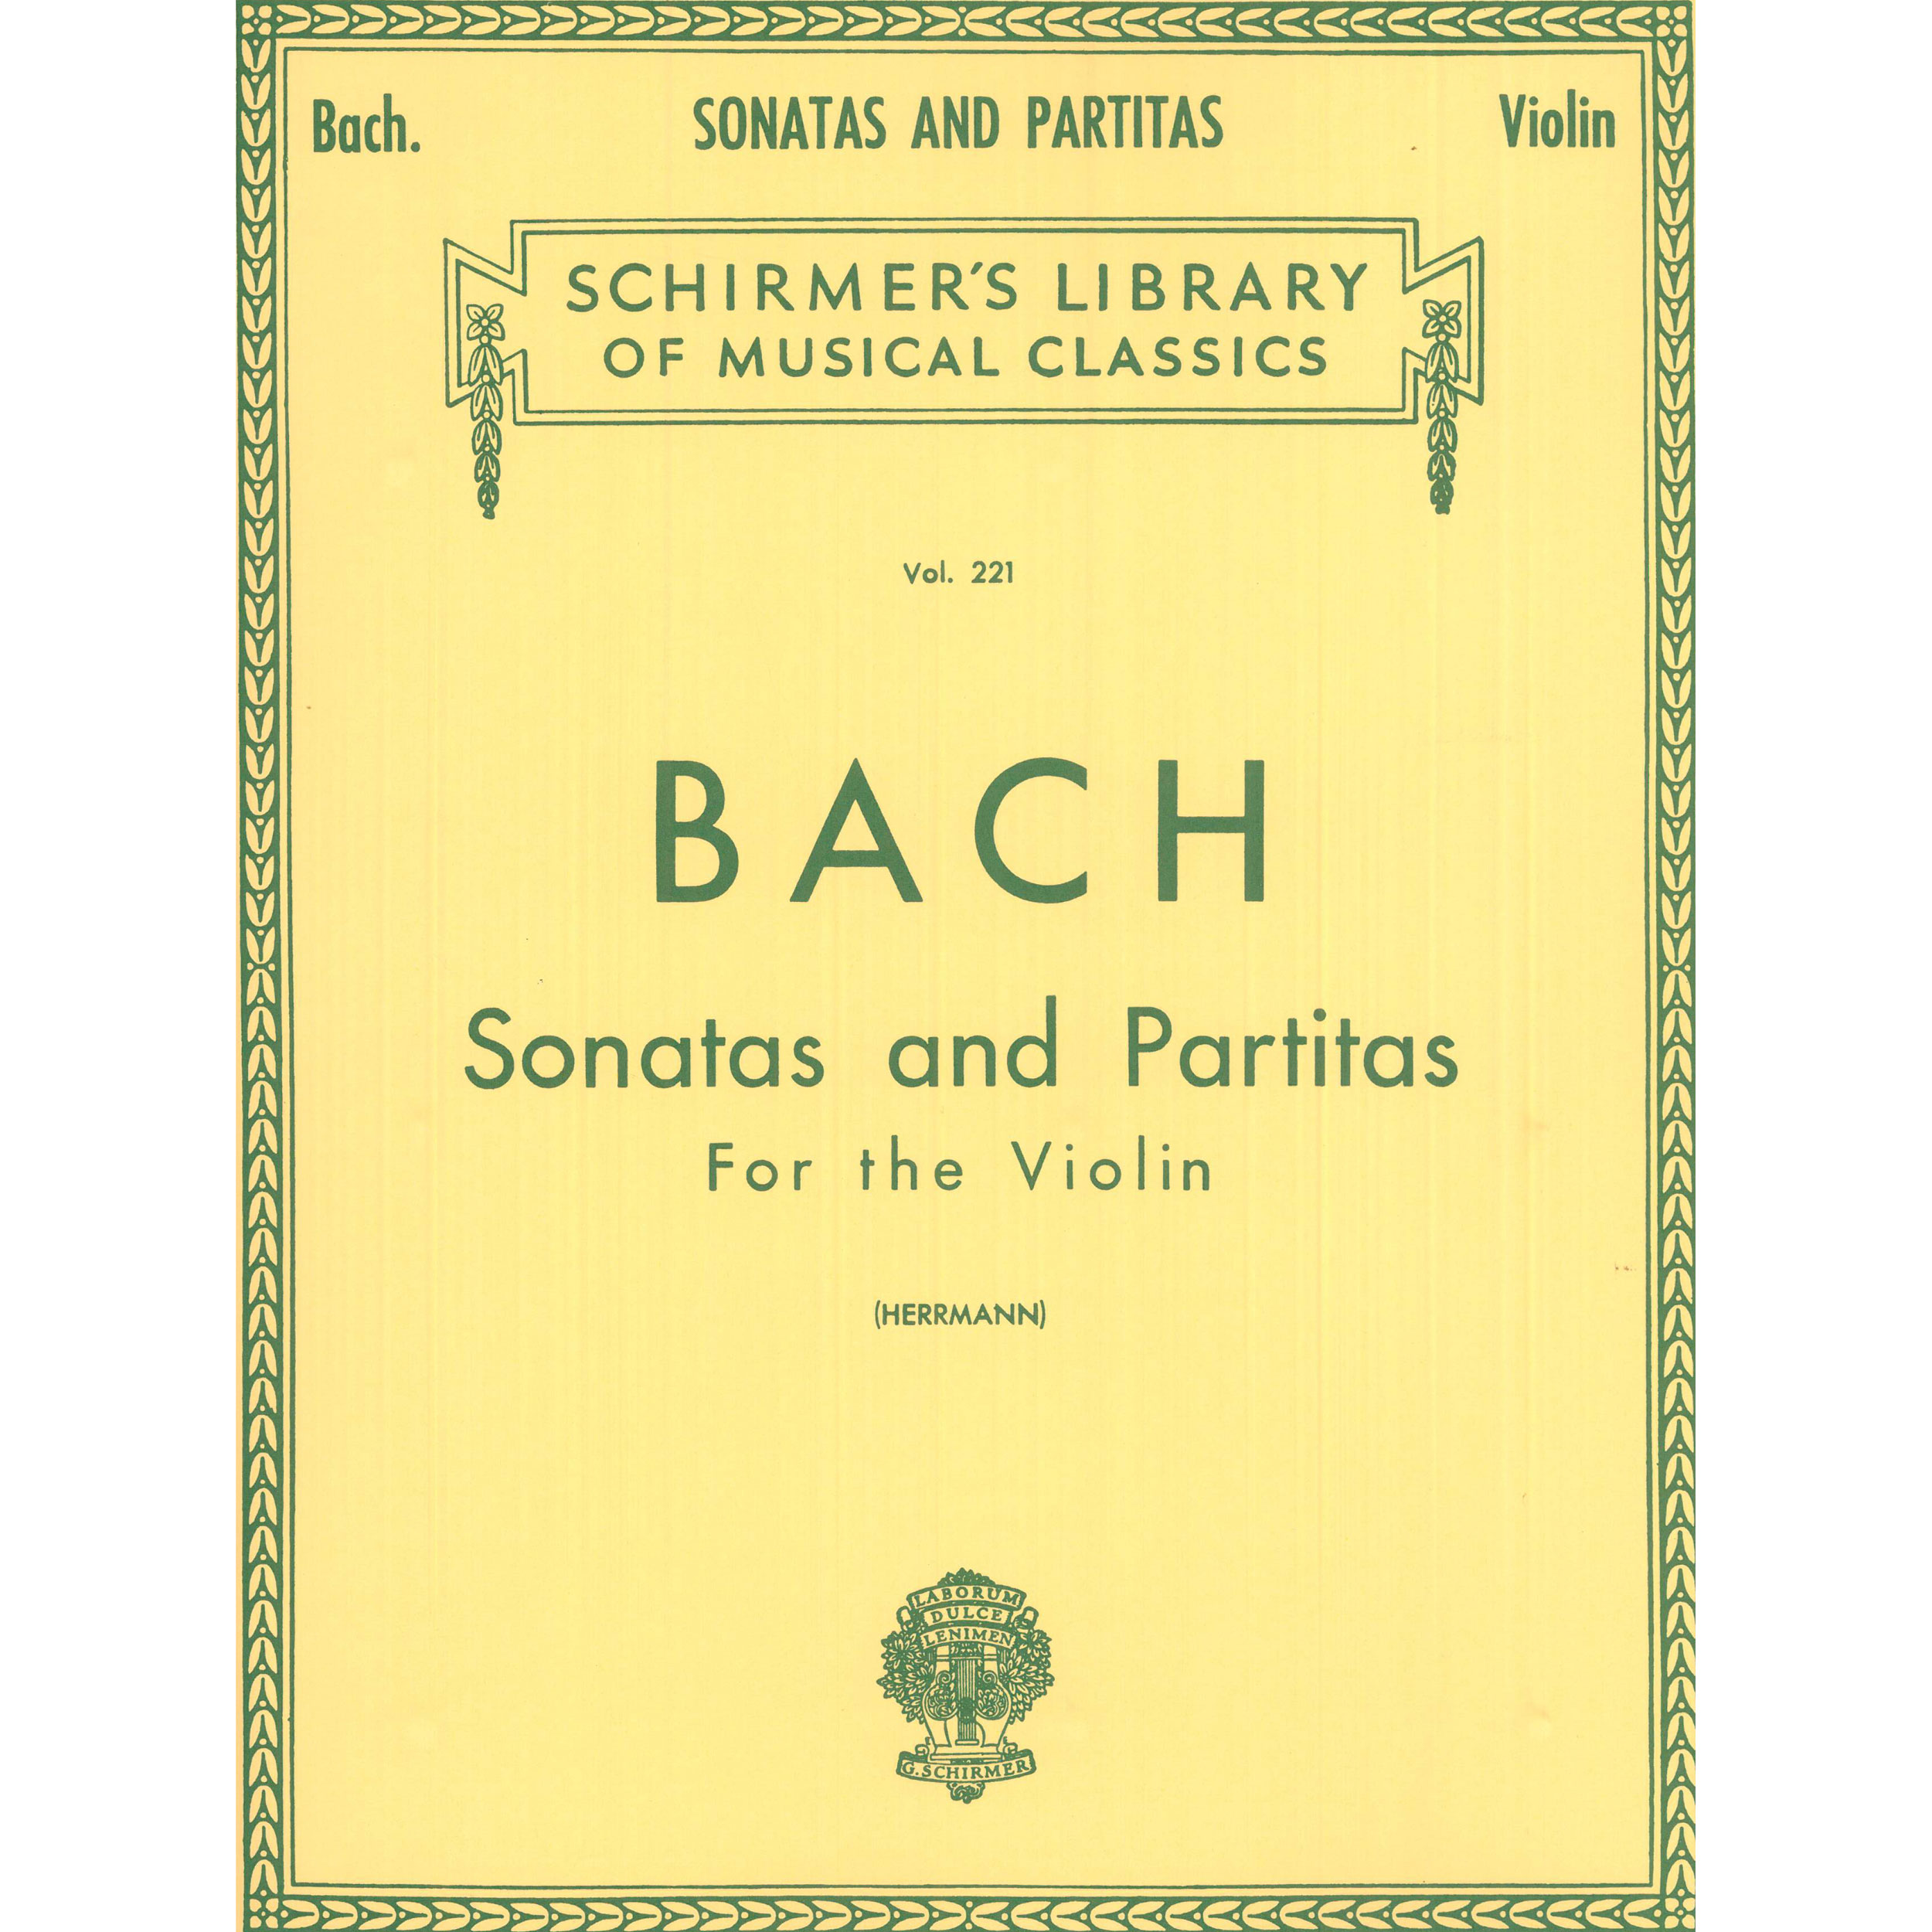 Sonatas and Partitas for Violin by J.S. Bach ed. Herrmann